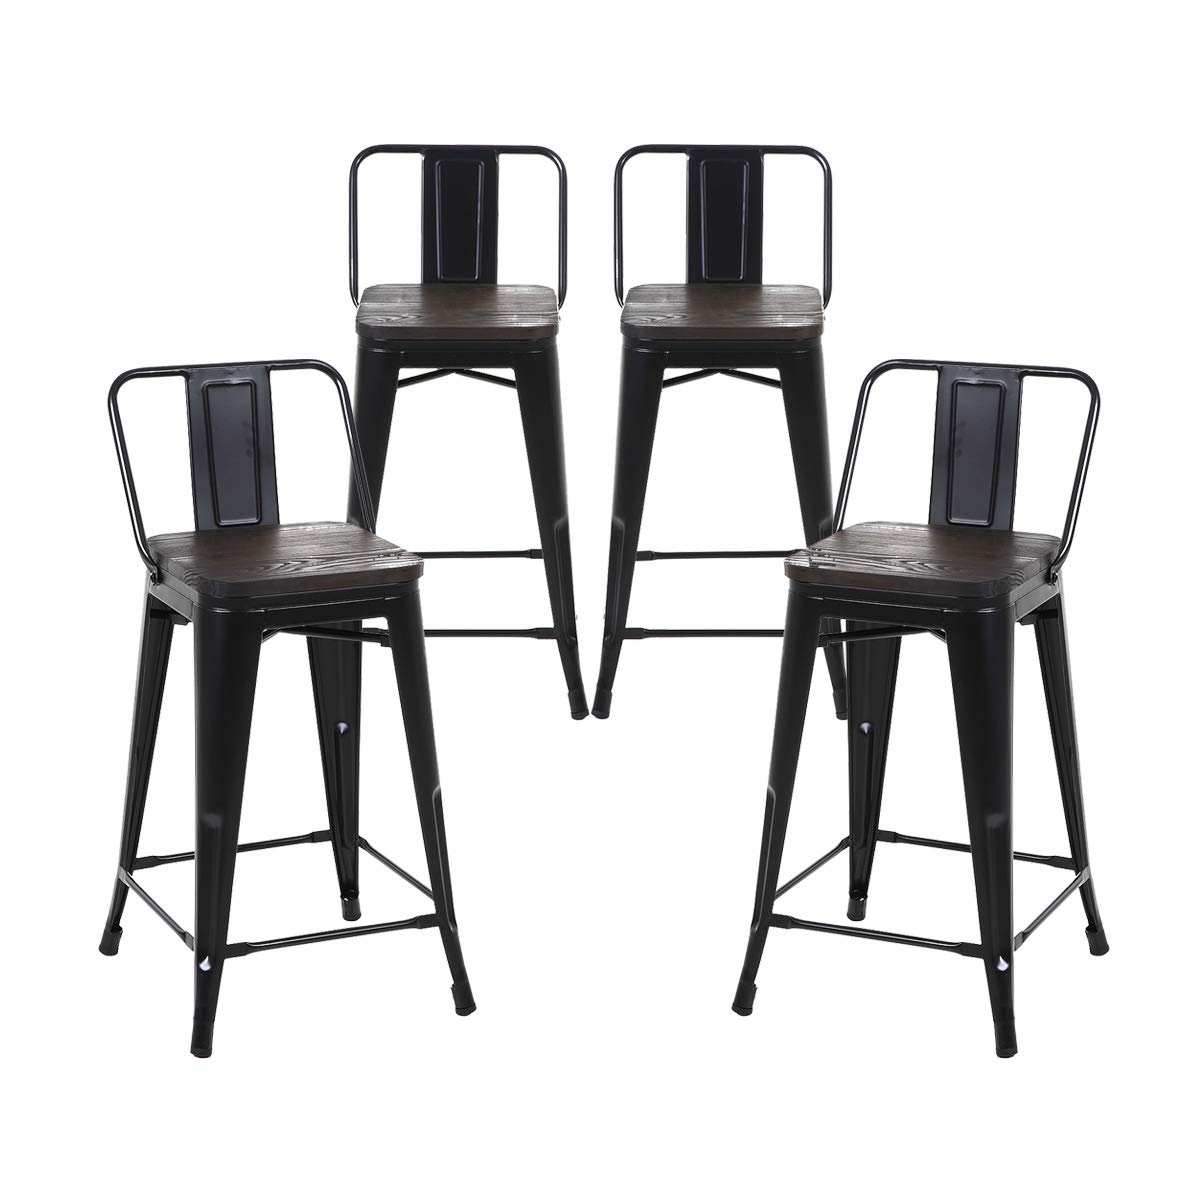 Buschman Set of 4 Matte Black Wooden Seat 24 Inch Counter Height Metal Bar Stools with Medium Back, Indoor Outdoor